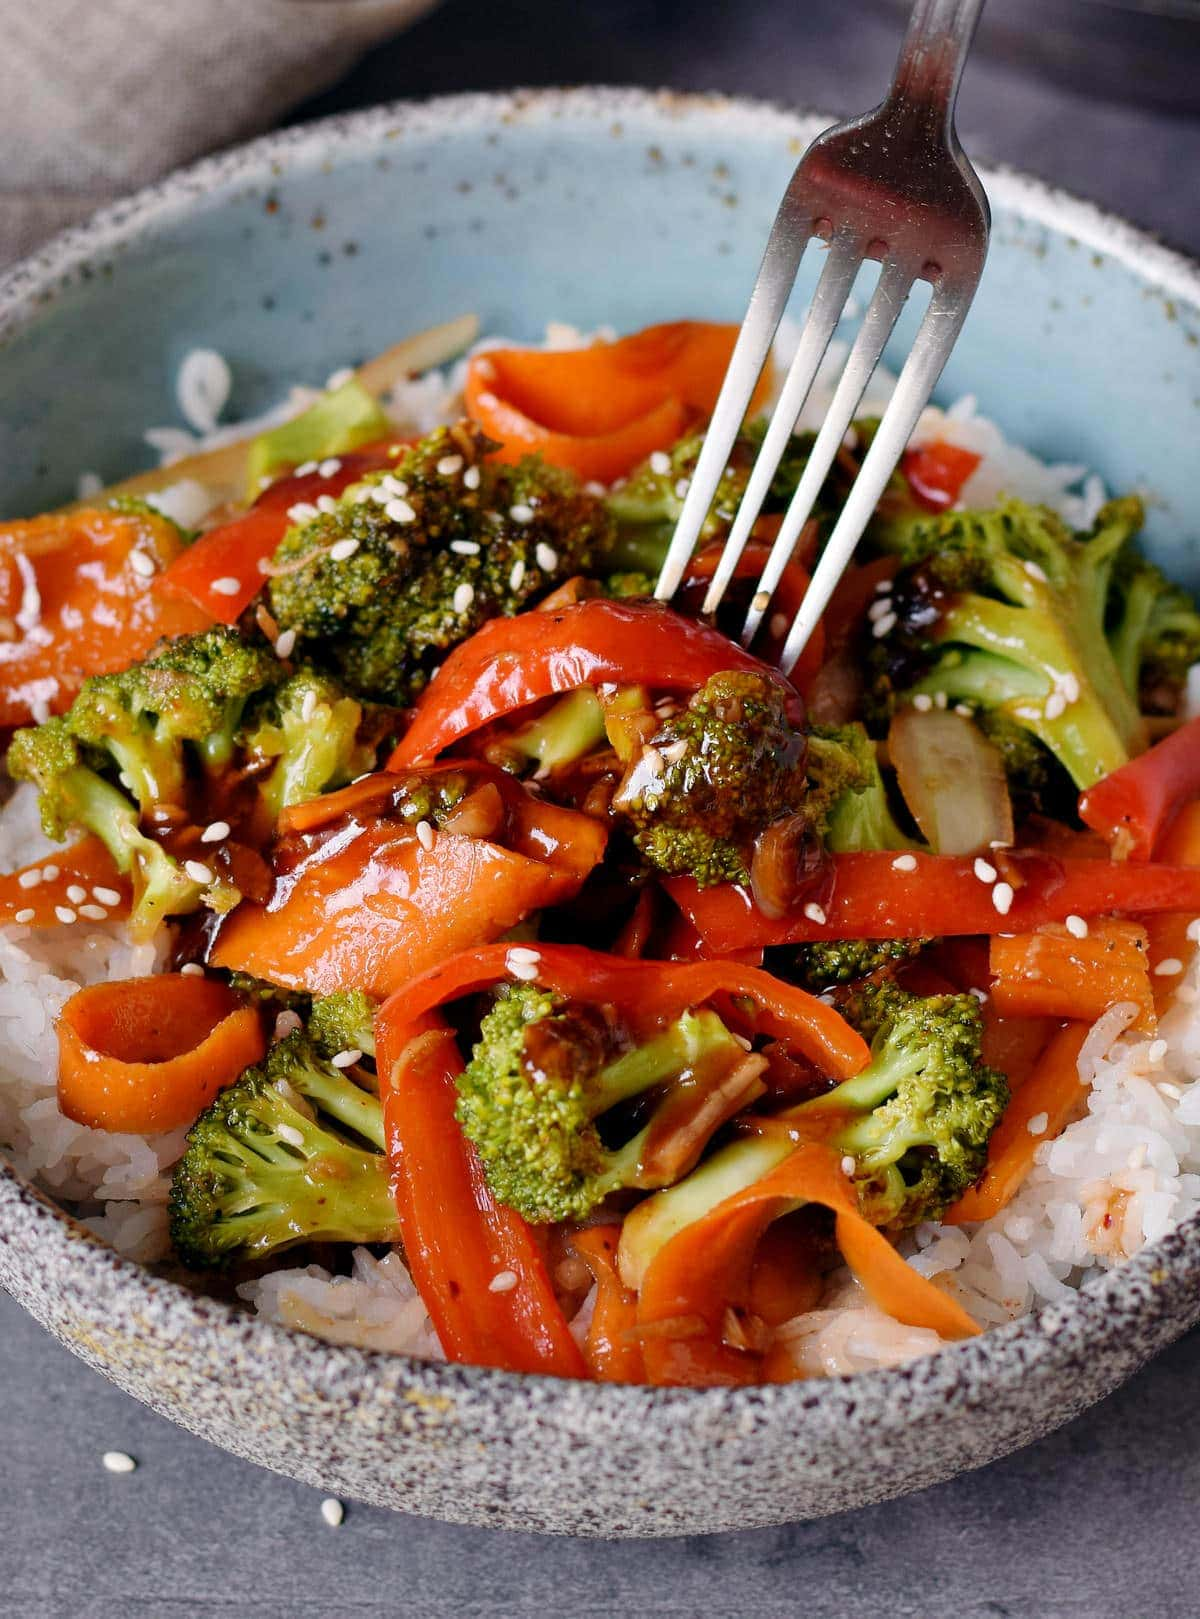 fork submerged in broccoli stir-fry with rice